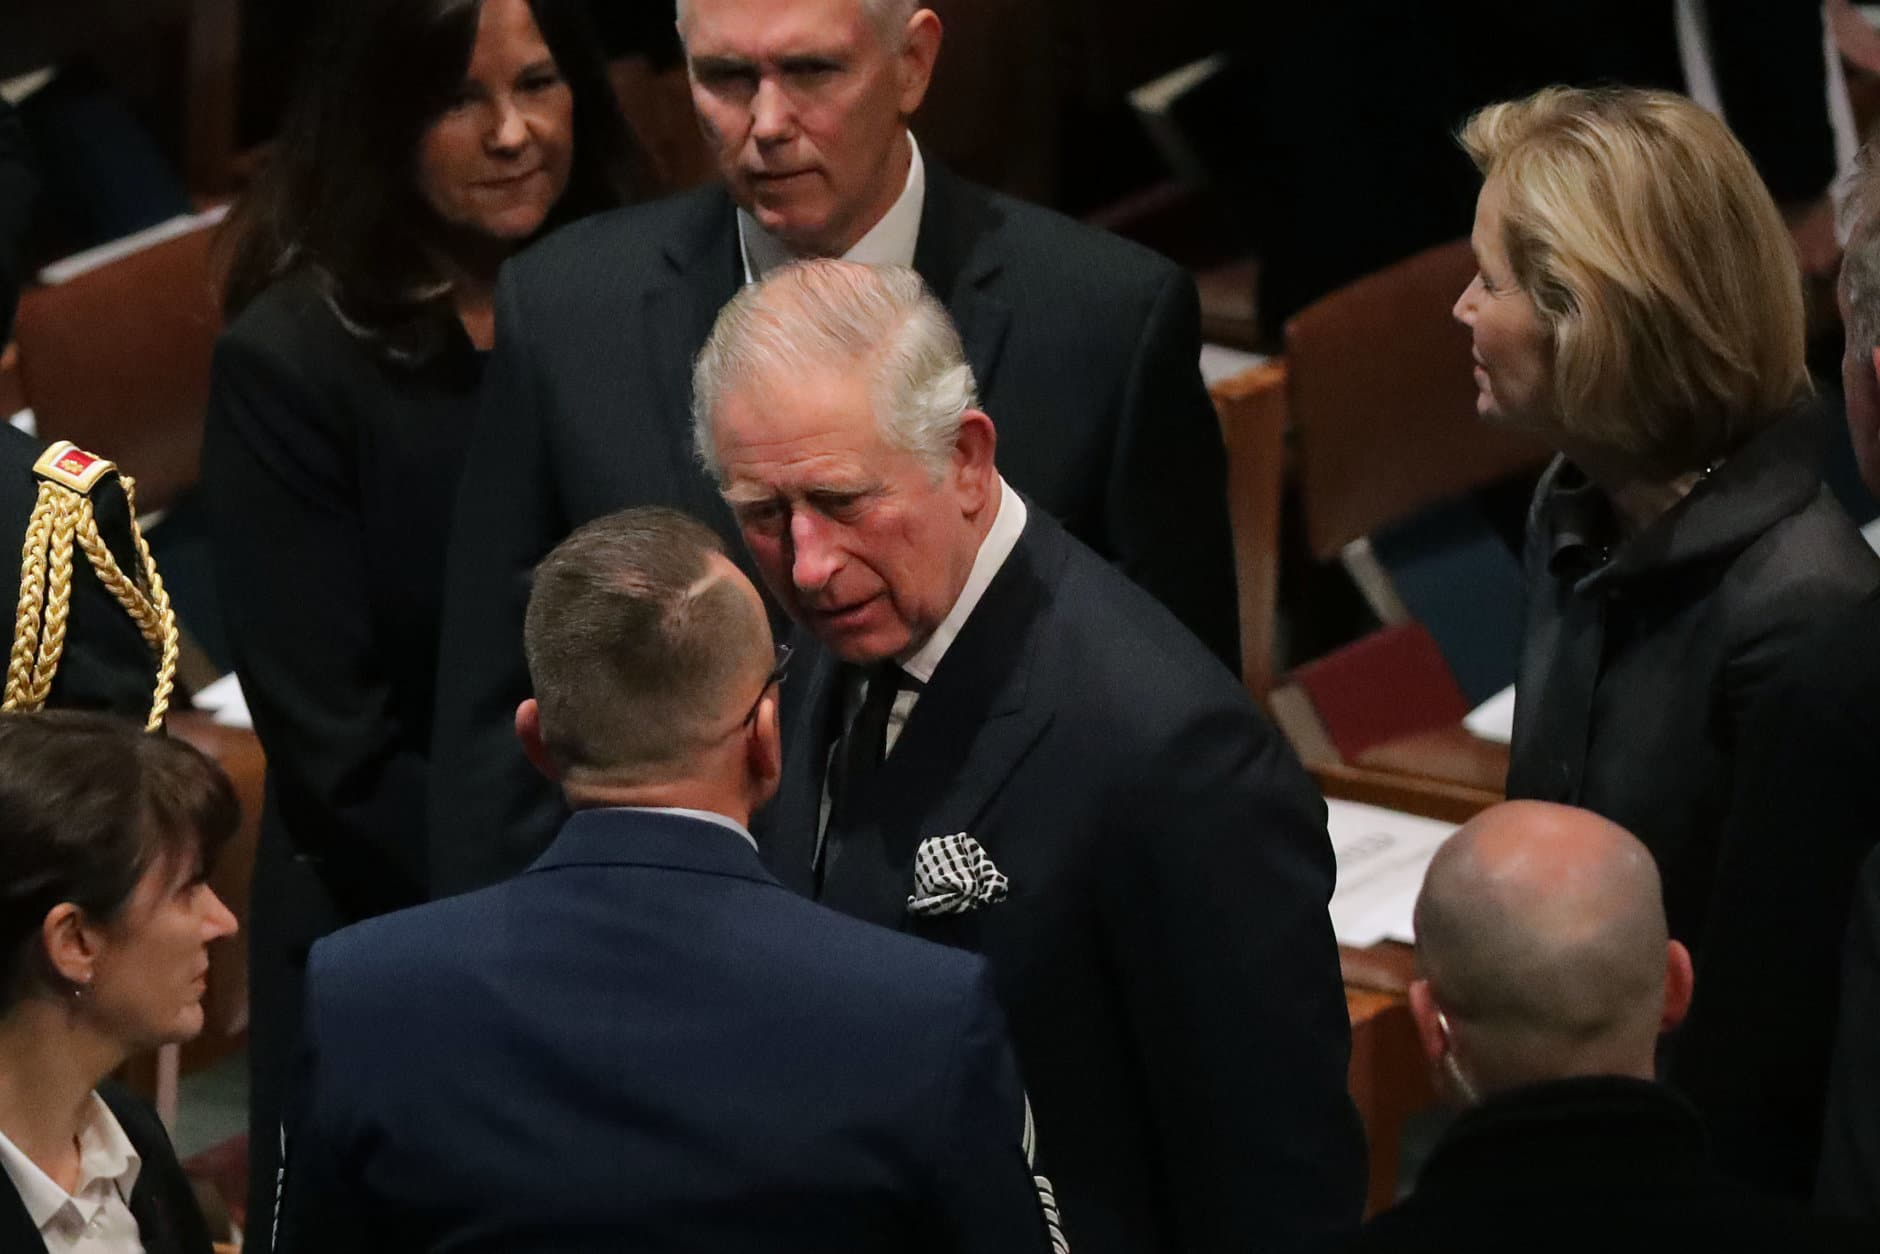 Britain's Prince Charles (C) attends the state funeral for former President George H.W. Bush at the National Cathedral December 05, 2018 in Washington, DC. A WWII combat veteran, Bush served as a member of Congress from Texas, ambassador to the United Nations, director of the CIA, vice president and 41st president of the United States.  (Photo by Chip Somodevilla/Getty Images)